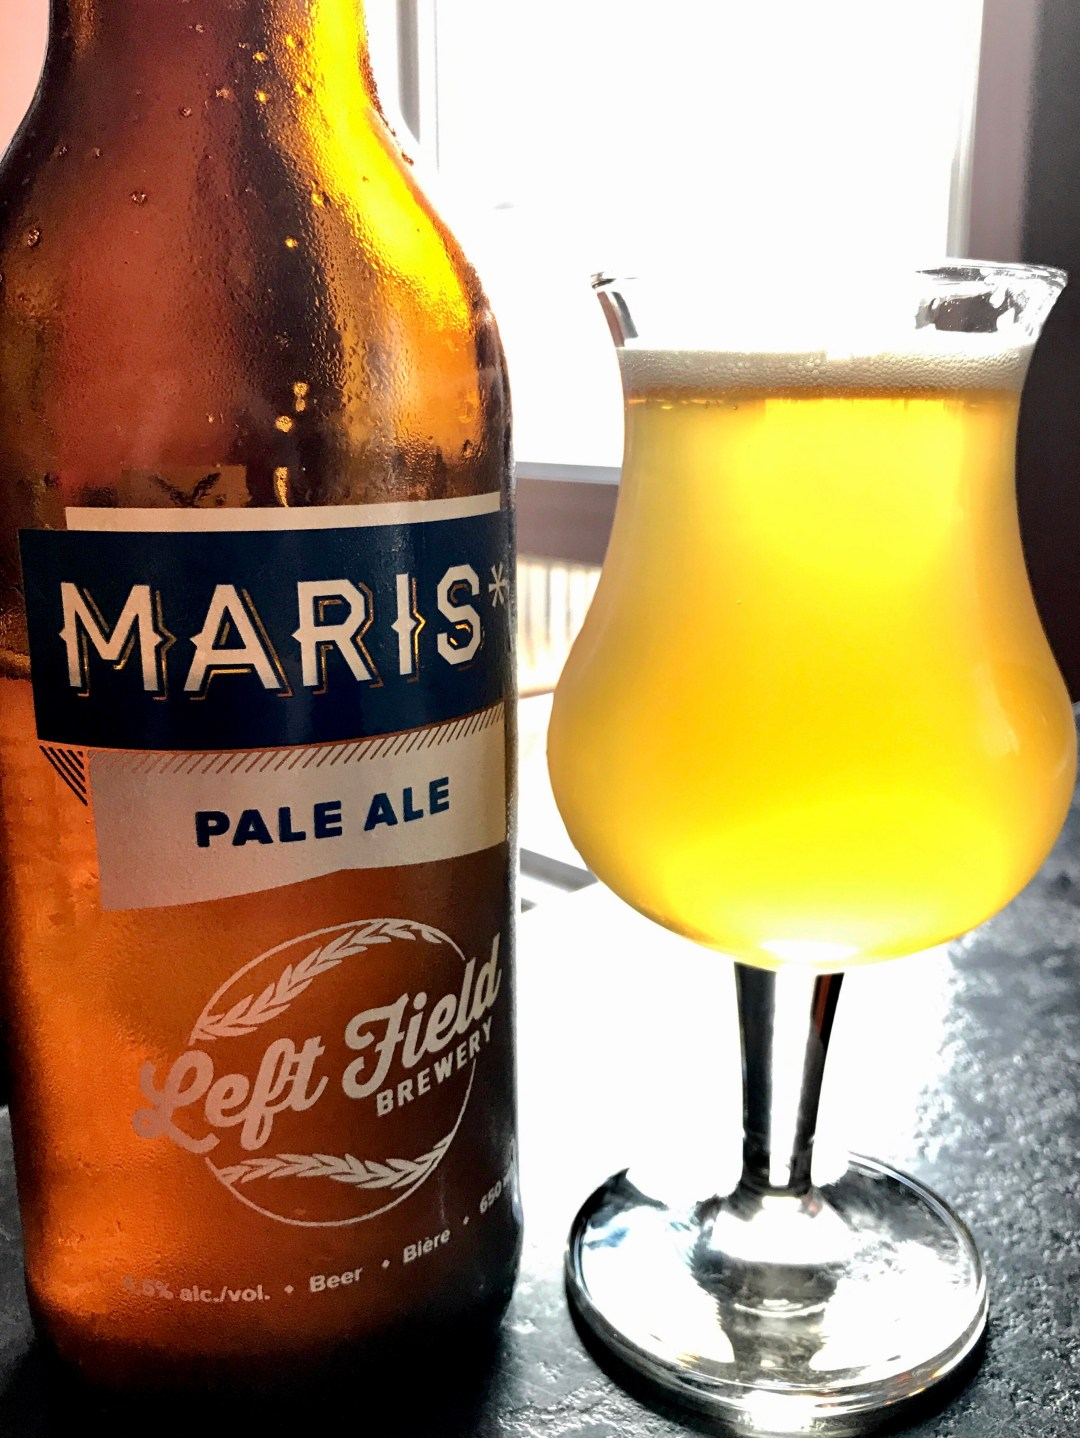 Roger Maris' home run record stood for decades, and it took steroid-tainted ballplayers to top it. Maris* is a Pale Ale with the same innocent purity.